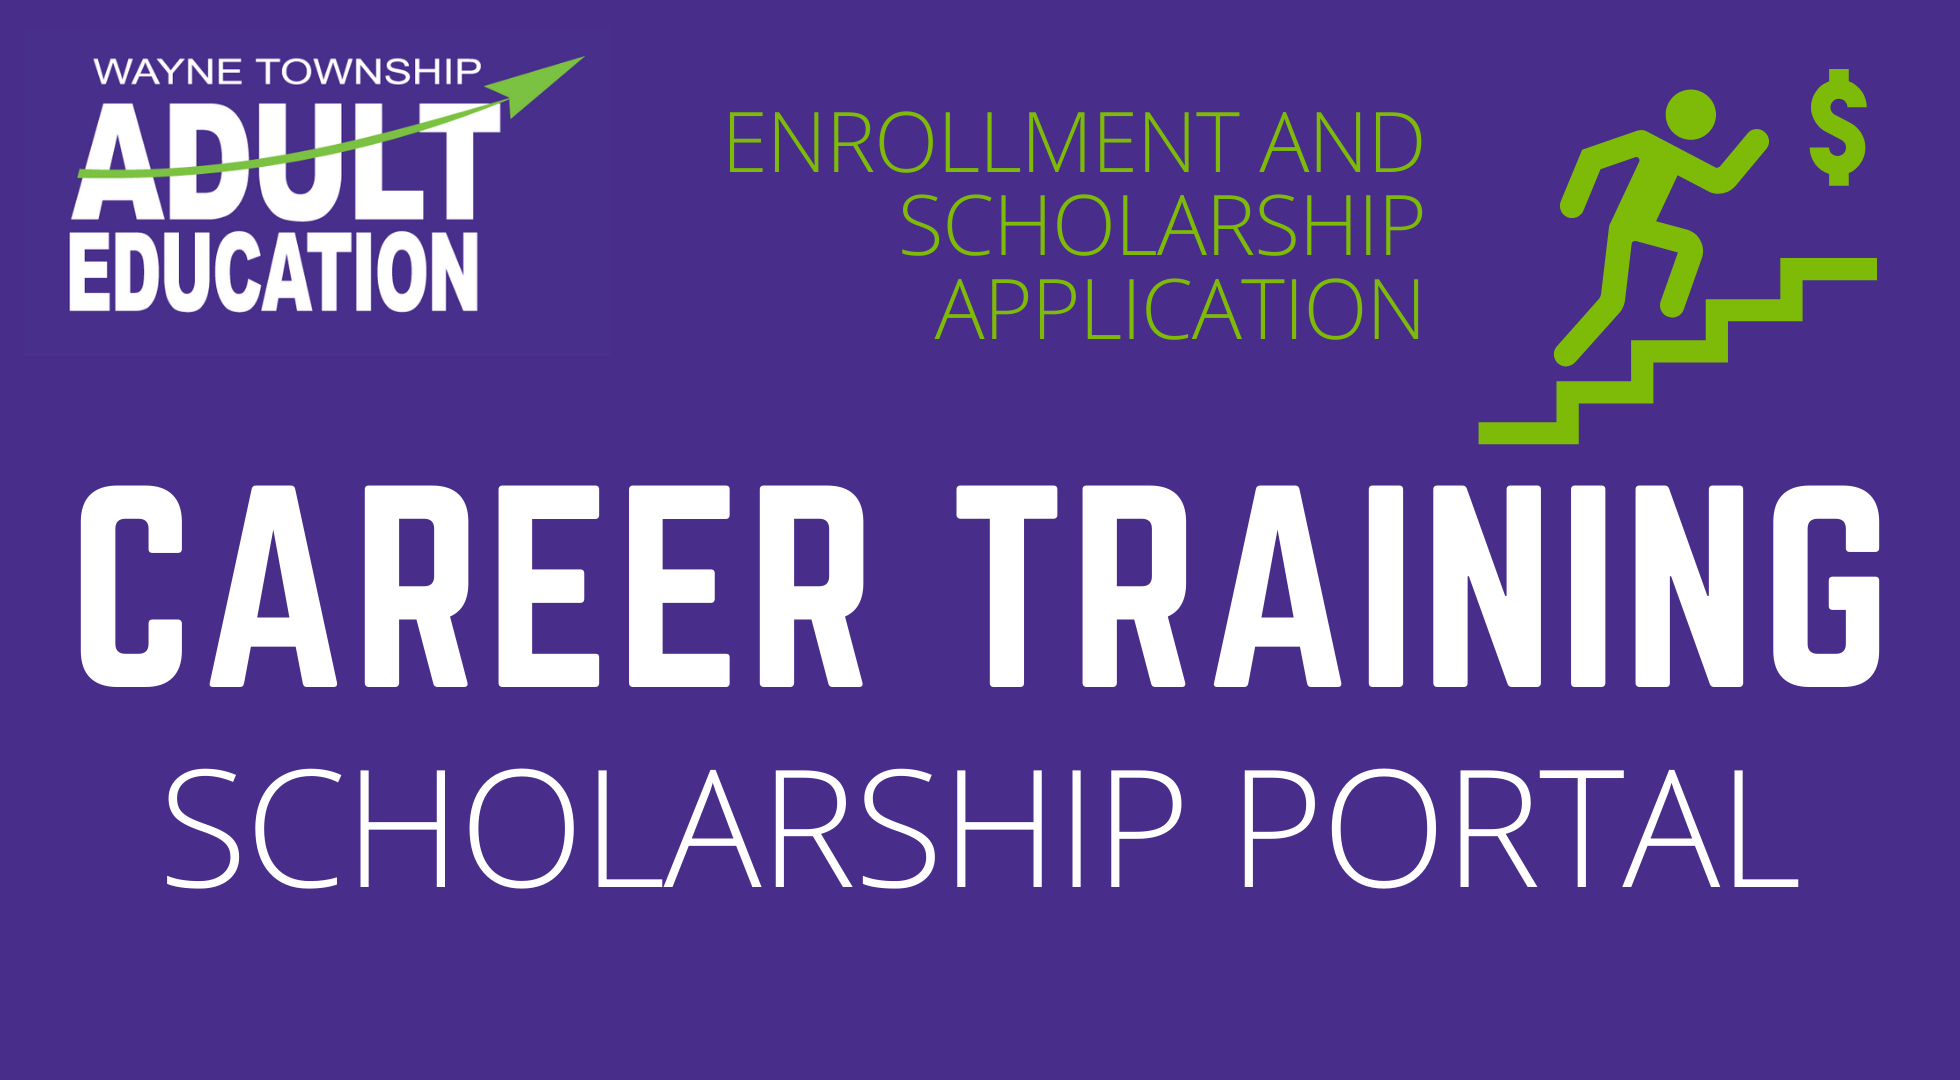 Career Training Scholarship Portal